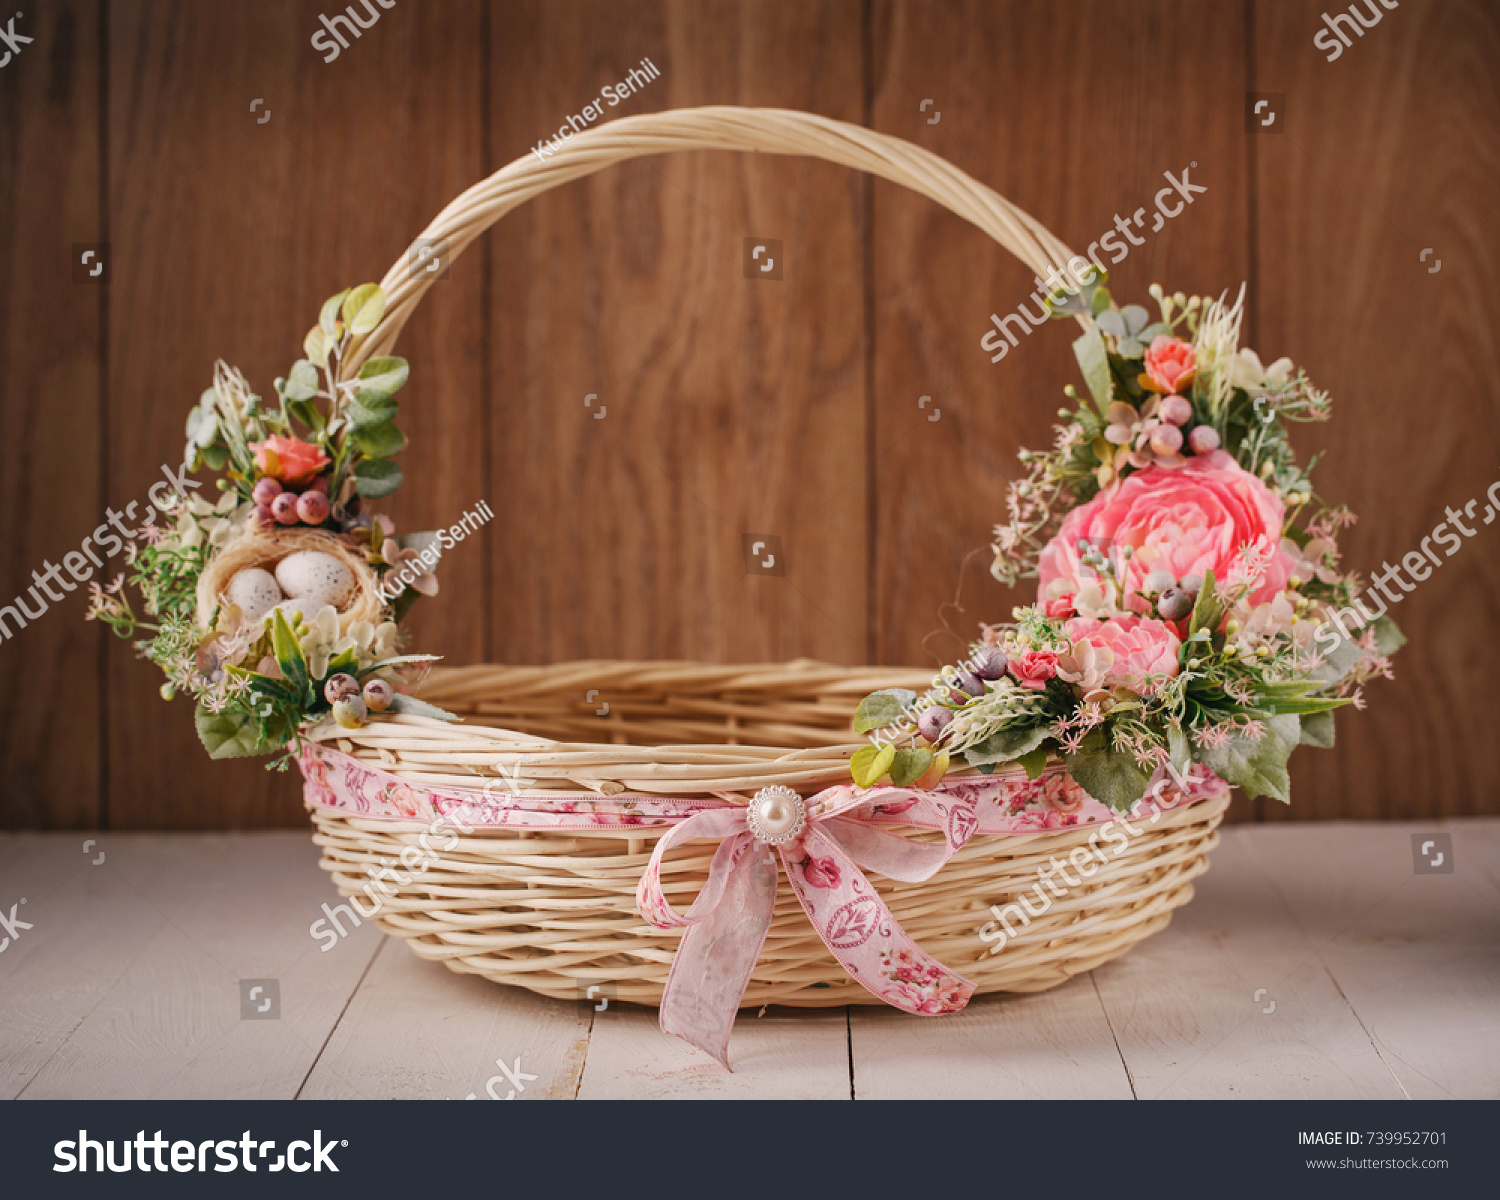 Beautiful Decorative Basket Flowers Celebrate Easter Stock Photo